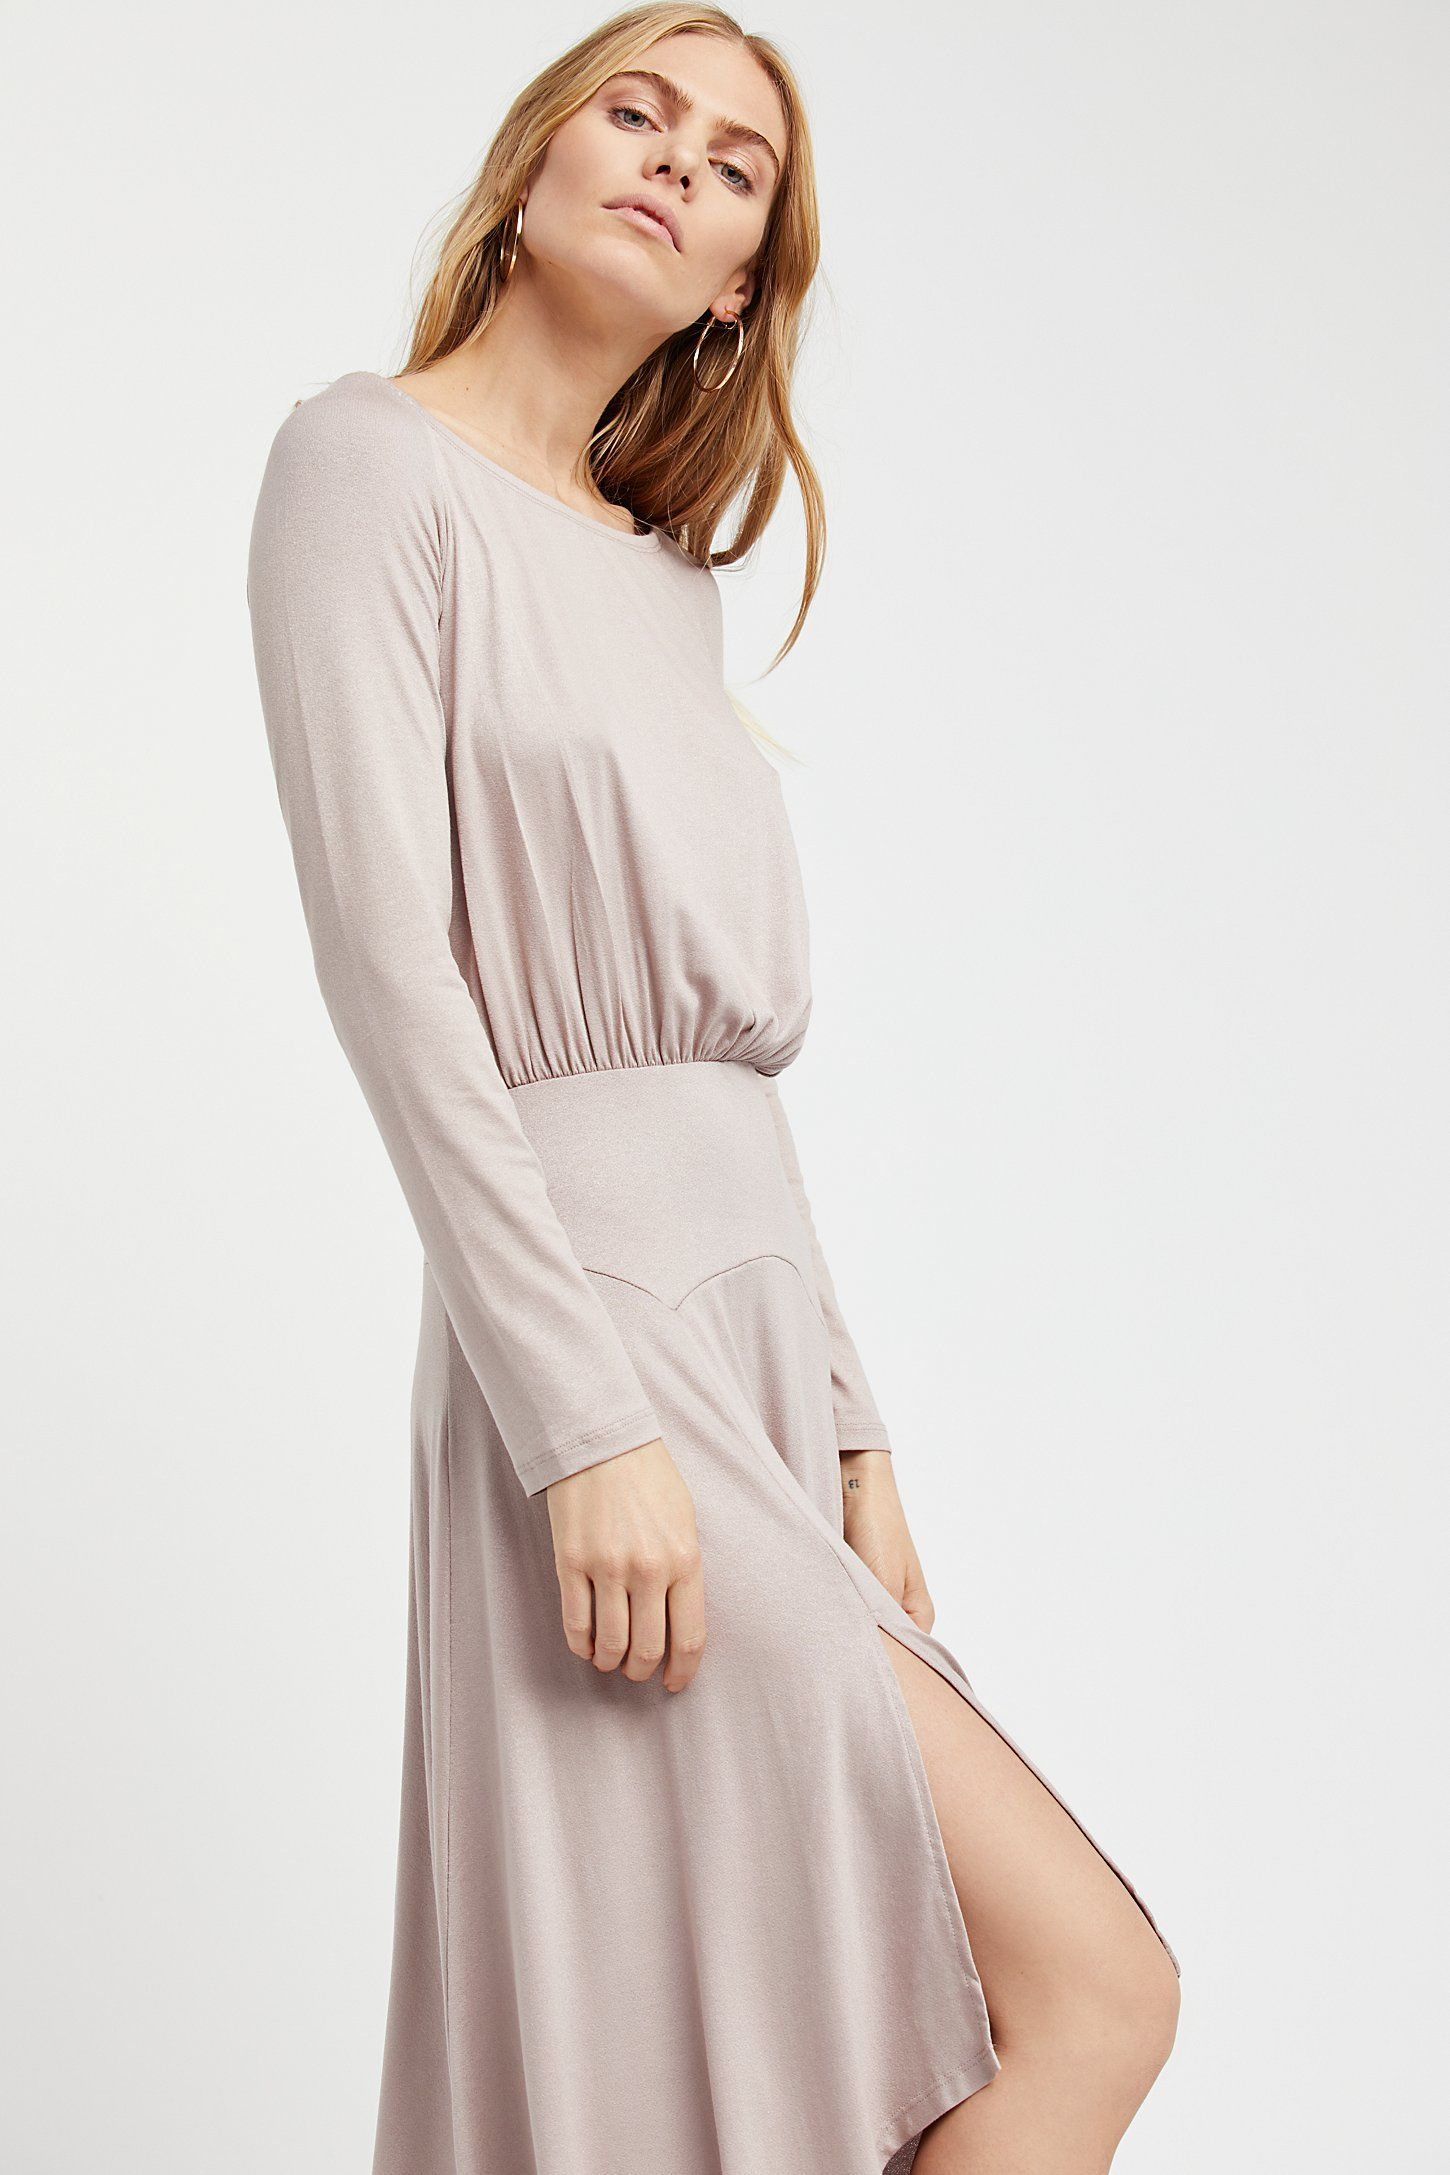 19fcaed0bb62 Shop our Jupiter Maxi Dress at FreePeople.com. Share style pics with FP Me